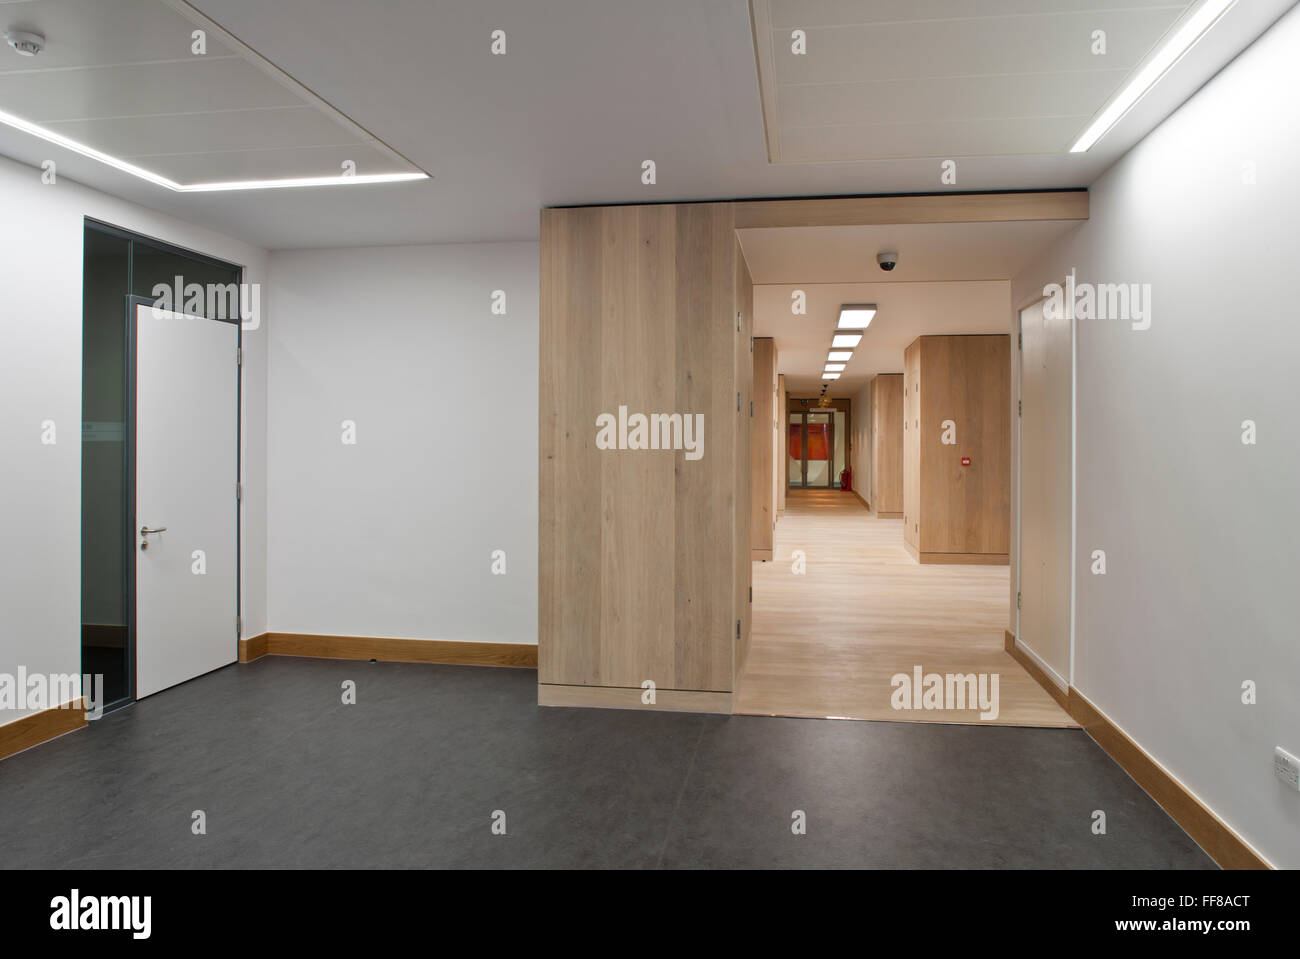 Corridor St Georges Hospital Tooting London - Stock Image